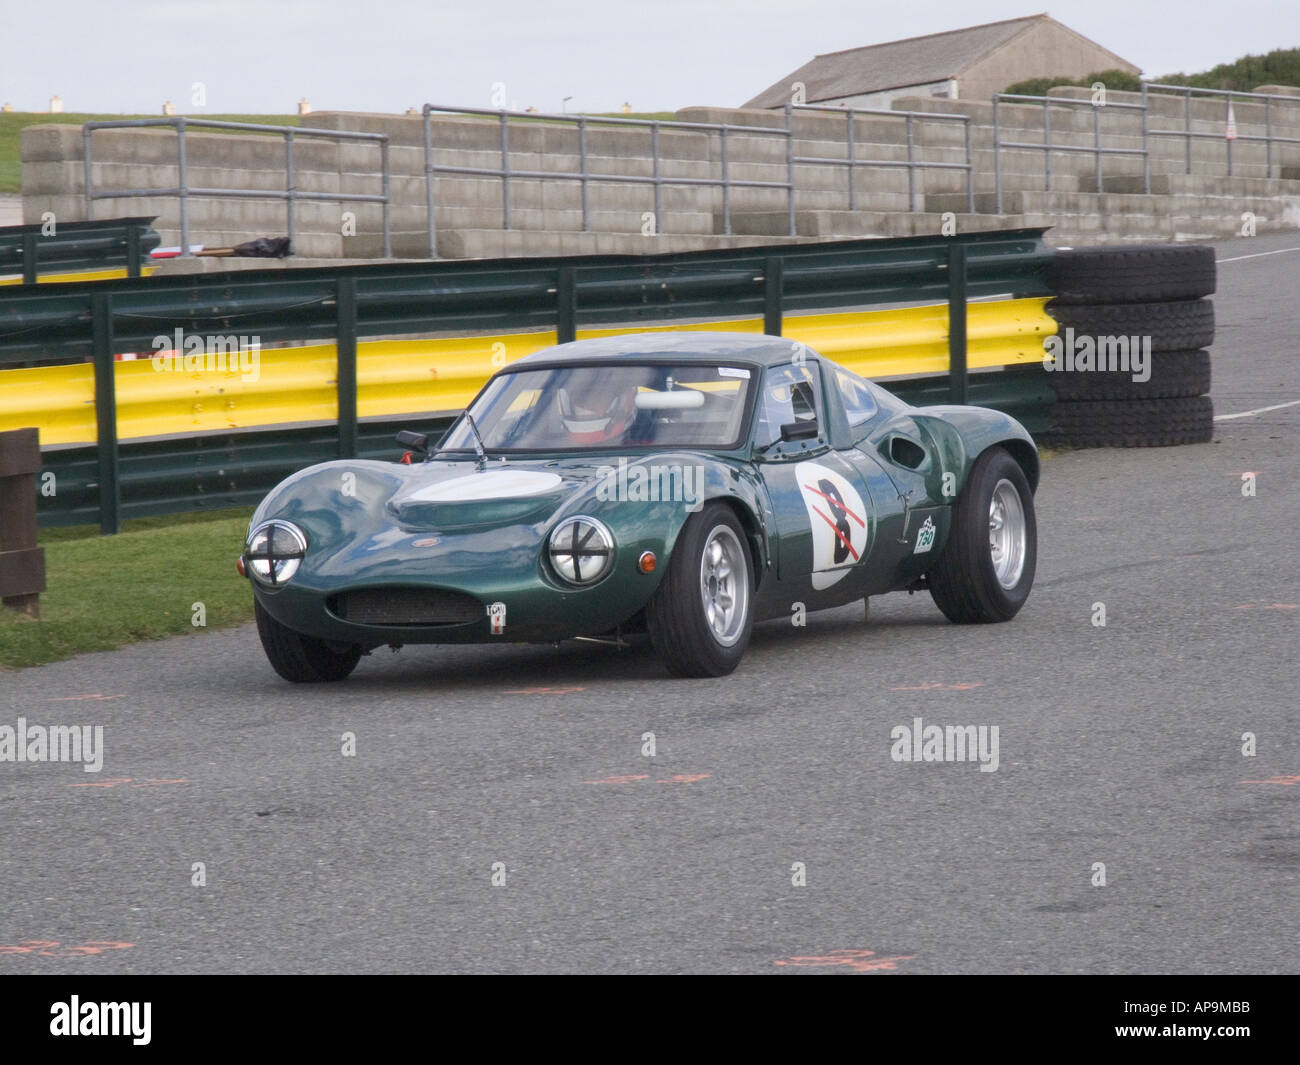 Lola Racing Cars Stock Photos & Lola Racing Cars Stock Images - Alamy